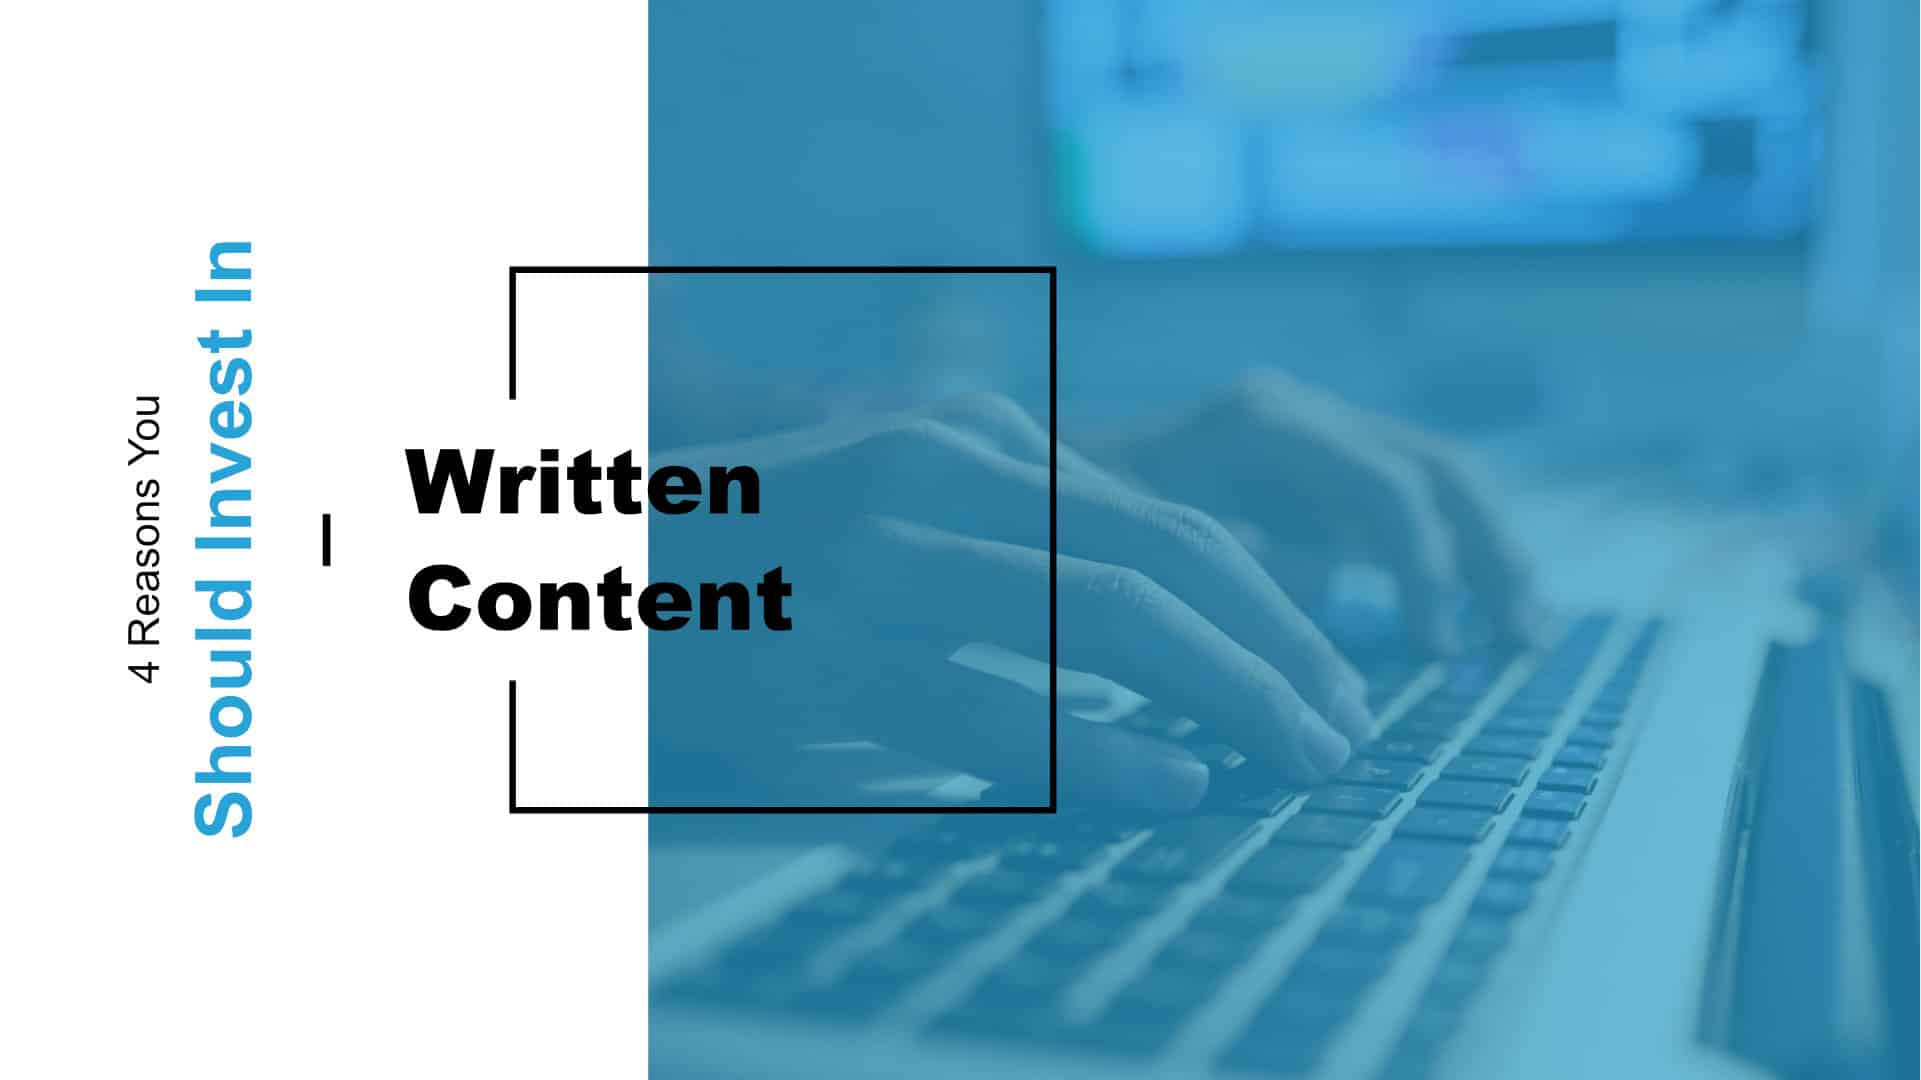 4 Reasons You Should Invest in Written Content Featured Image